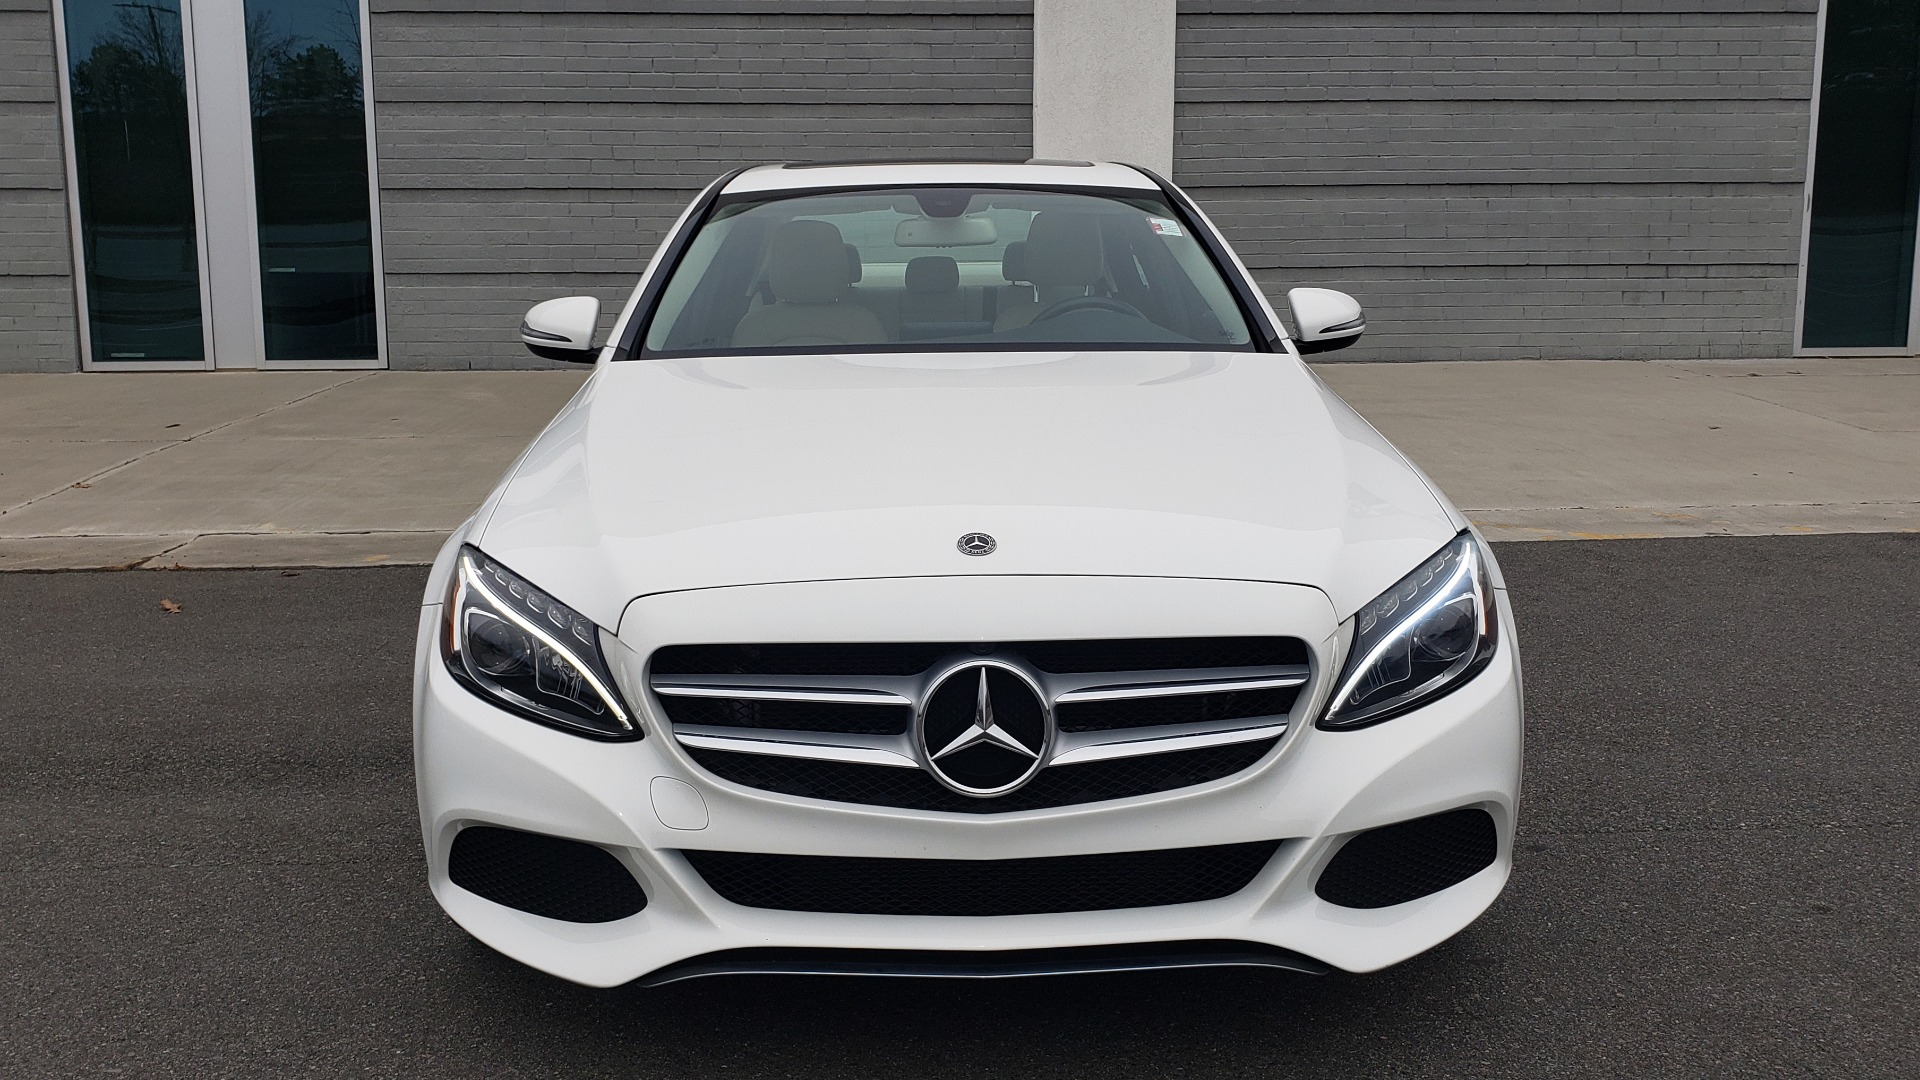 Used 2018 Mercedes-Benz C-CLASS C 300 PREMIUM / NAV / HTD STS / APPLE CARPLAY / REARVIEW for sale Sold at Formula Imports in Charlotte NC 28227 20